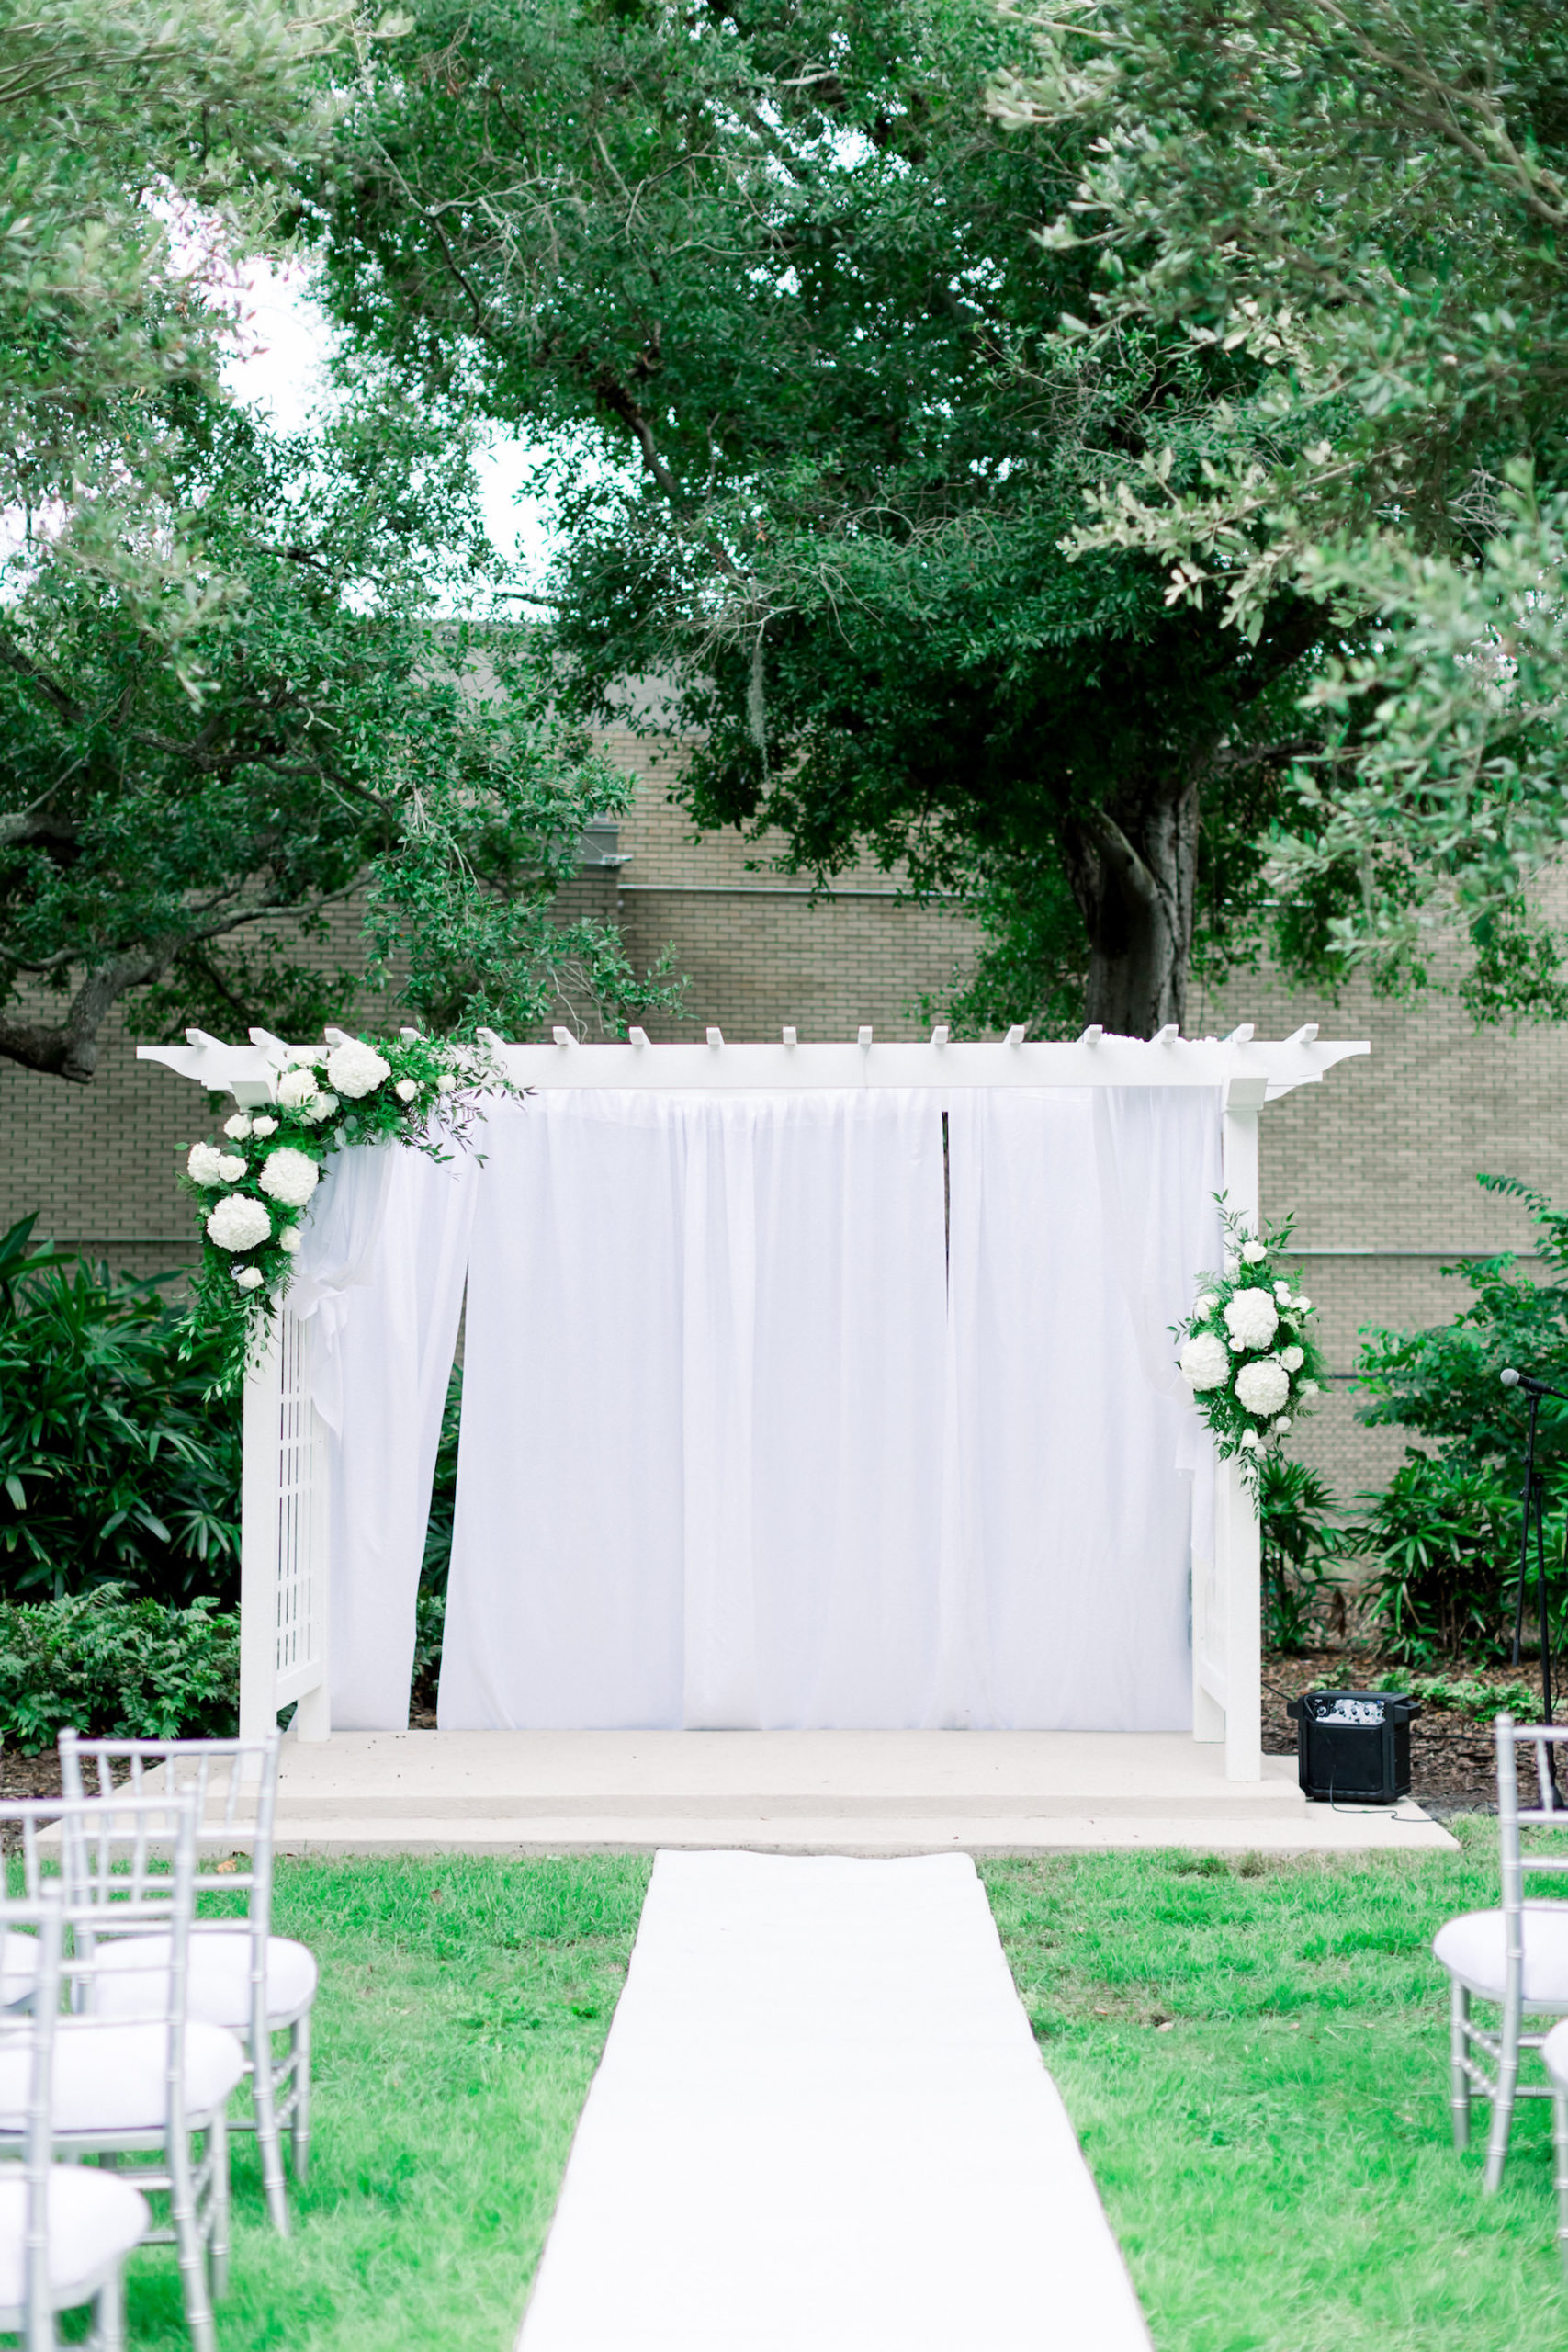 Wedding Ceremony Decor, Arbor Arch with White Draping and Floral Arrangements, White Aisle Runner, Silver Chiavari Chairs | Outdoor Wedding Venue Tampa Garden Club | Wedding Photographer Shauna and Jordon Photography